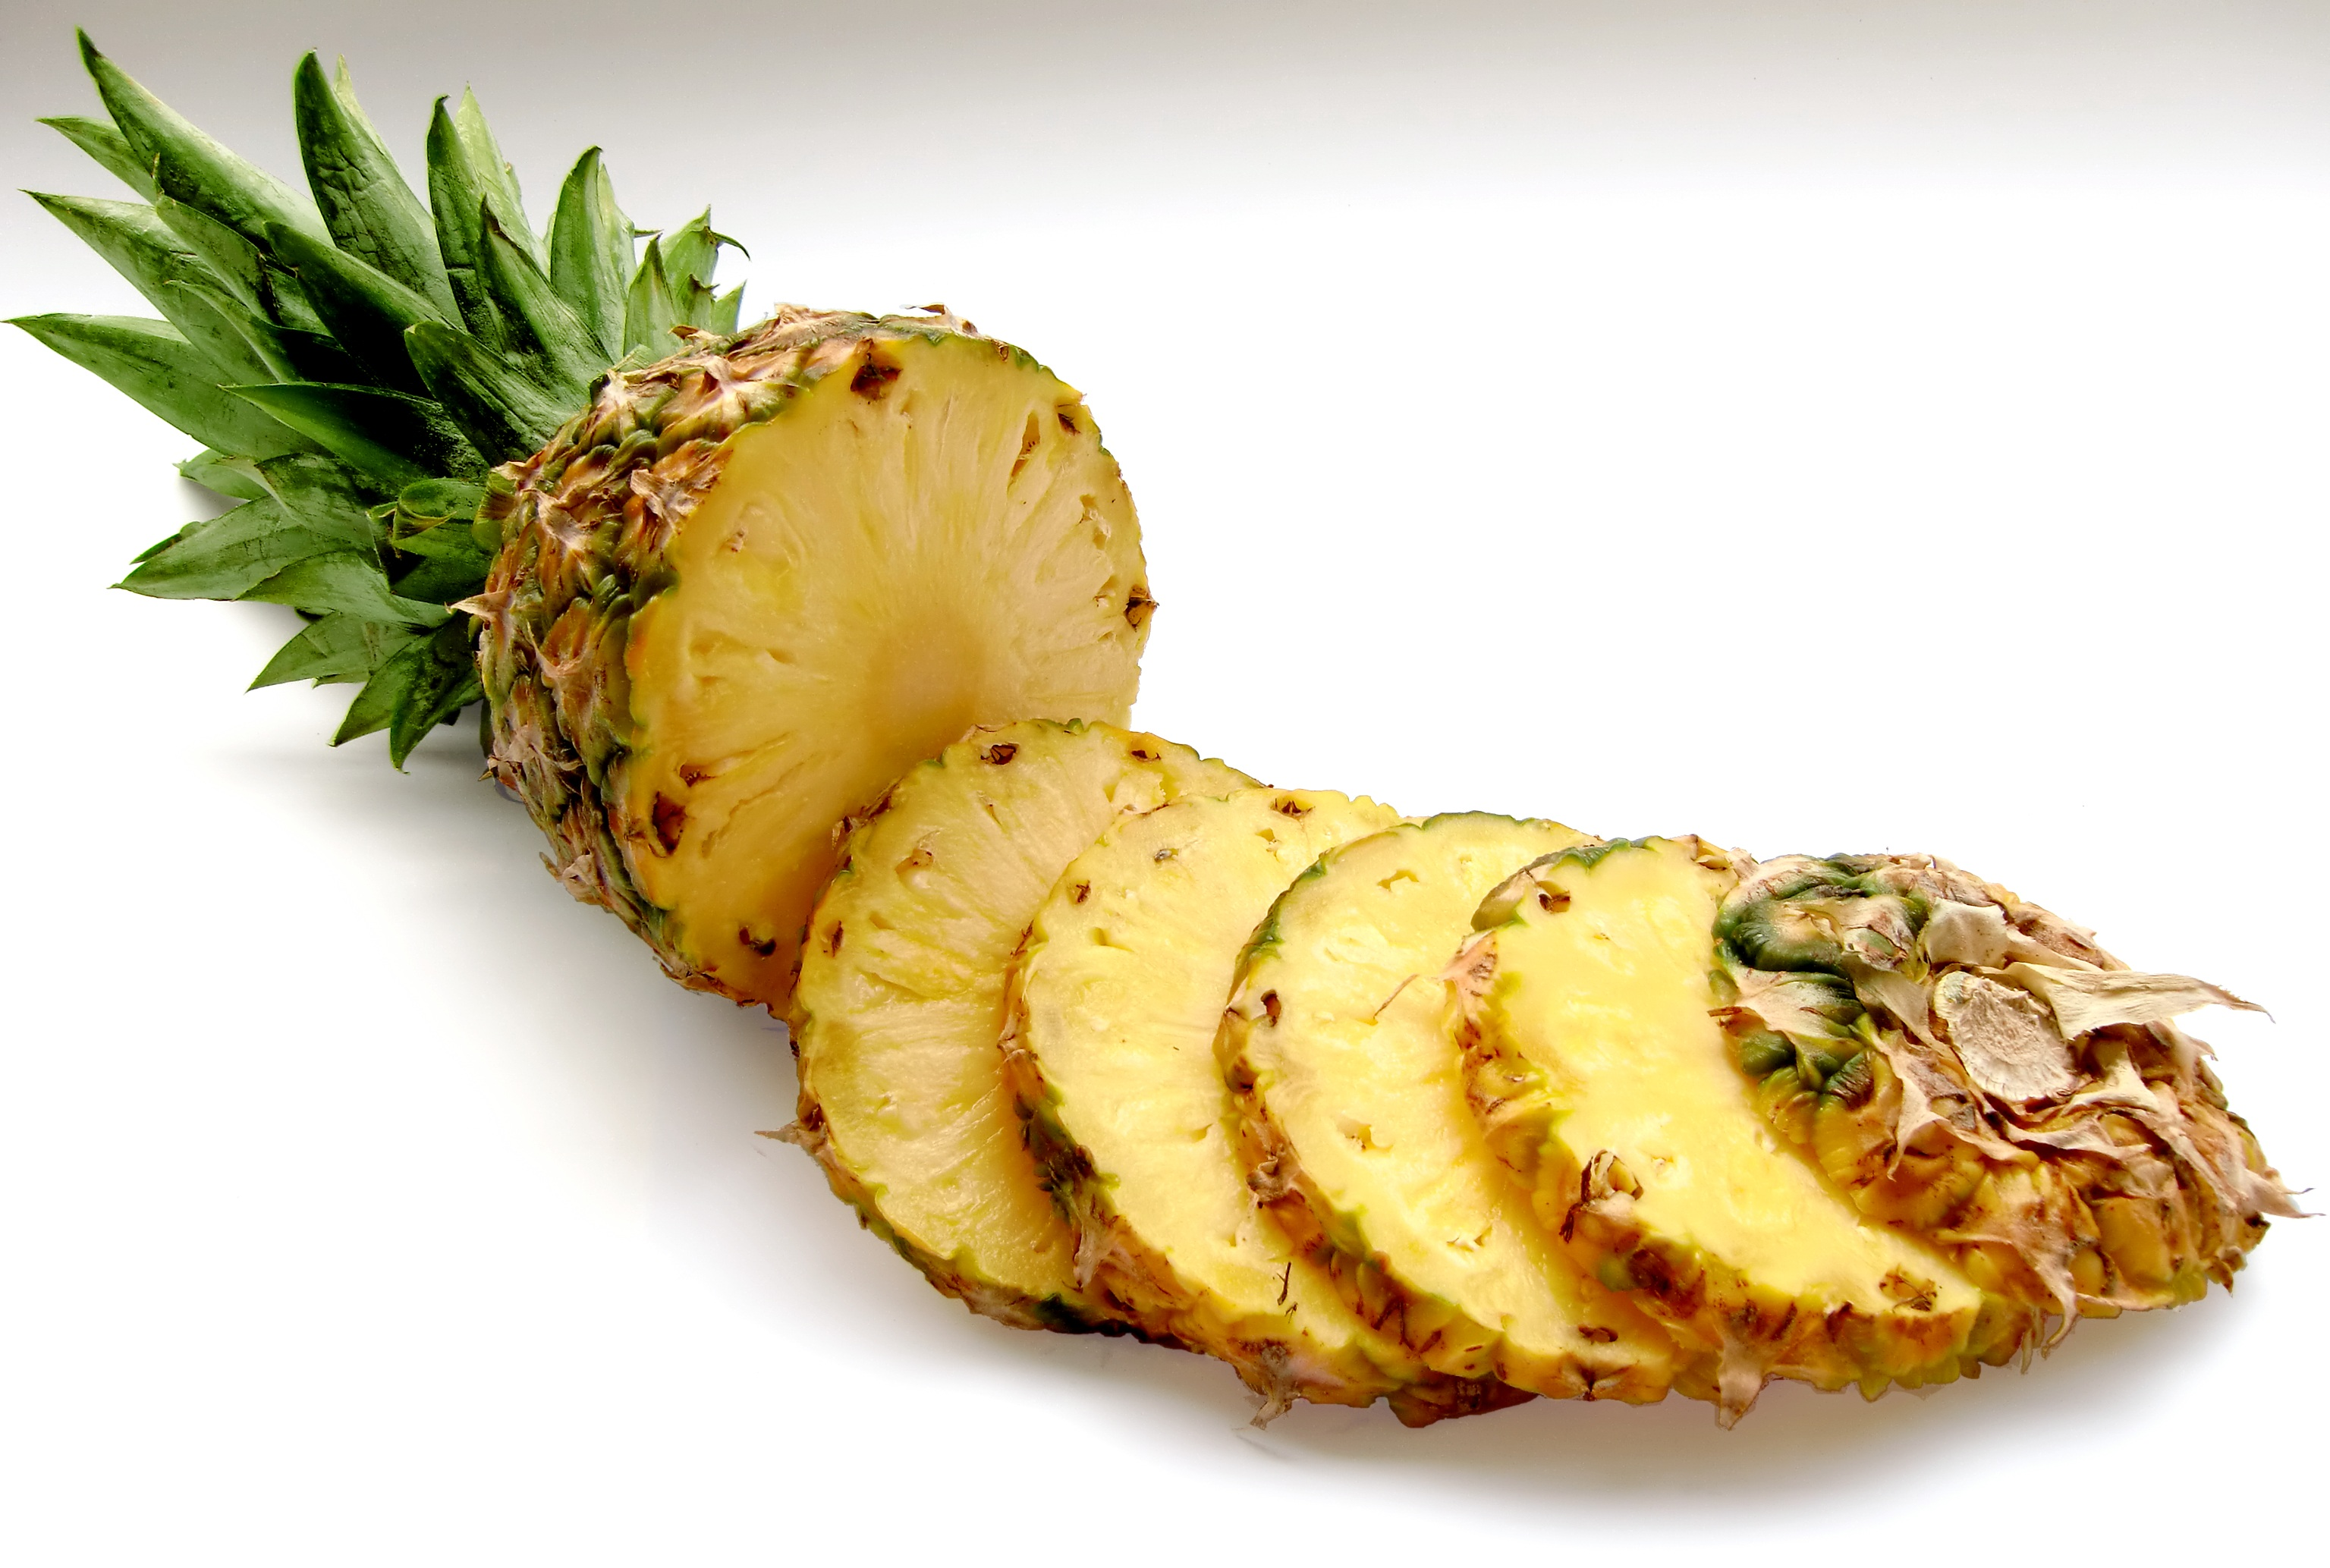 Sliced pineapple photo